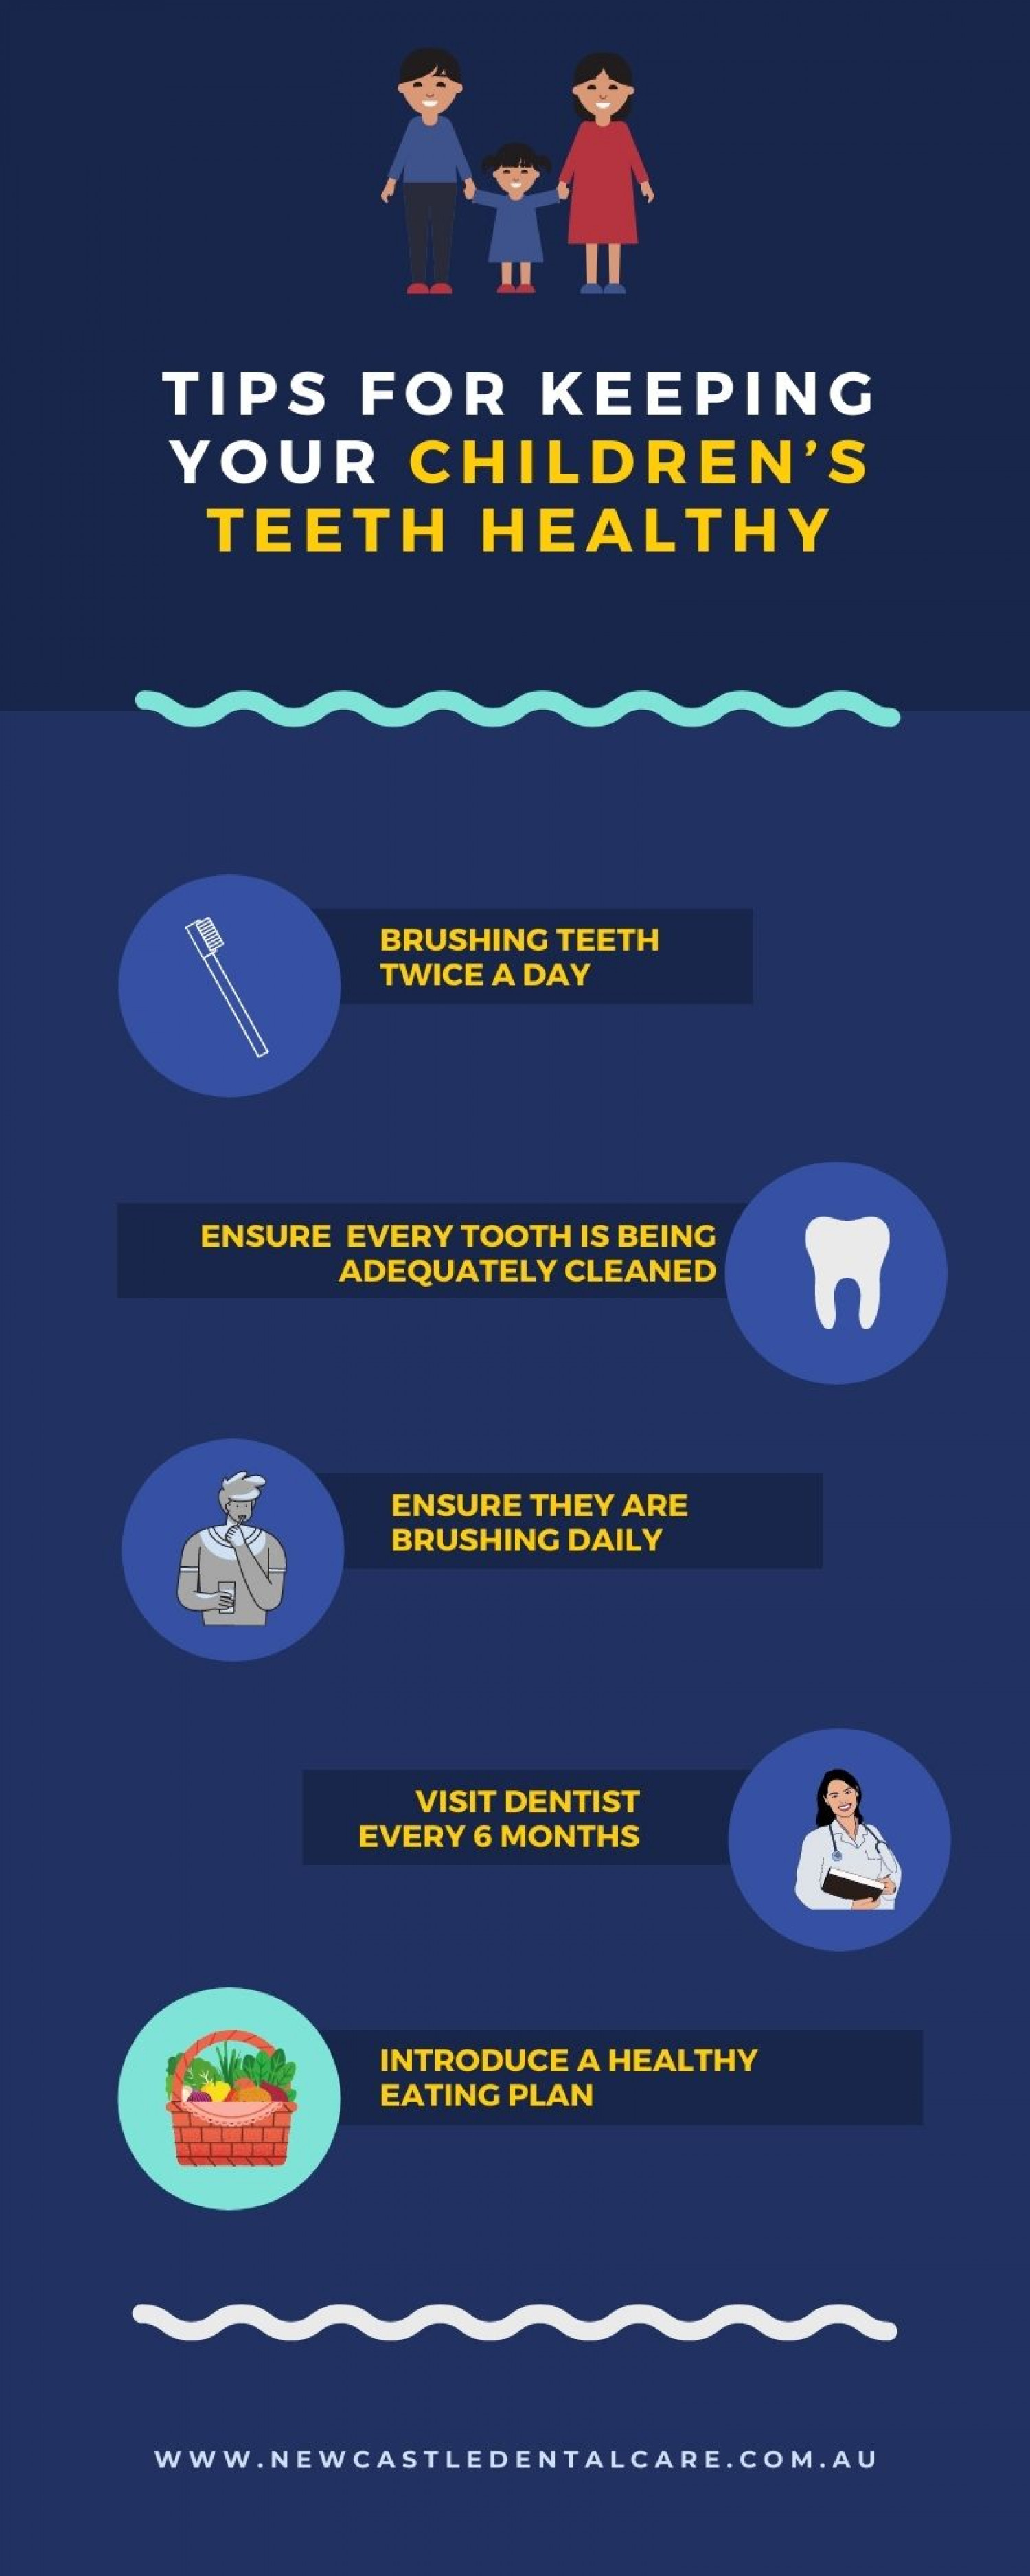 Tips for Keeping Your Children's Teeth Healthy Infographic